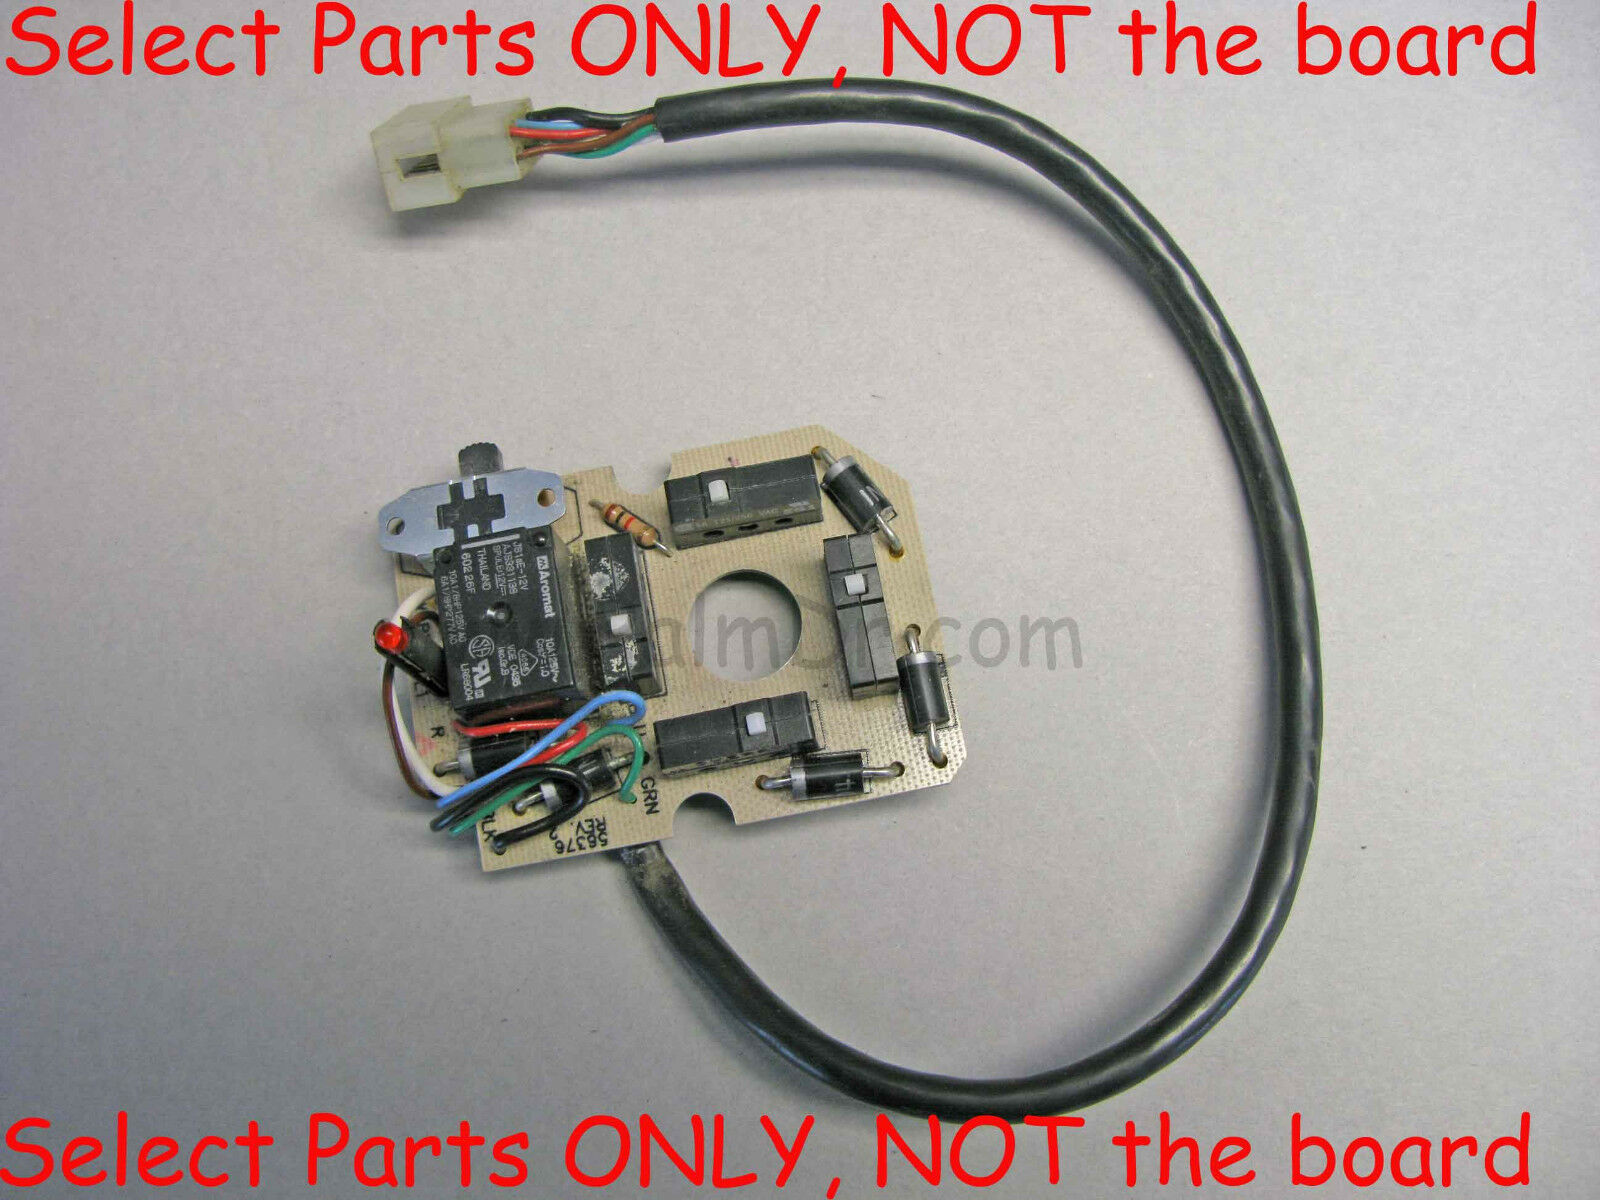 Replacement Parts for Joystick BOARD for Fisher Western plow controller 1  of 2FREE Shipping ...